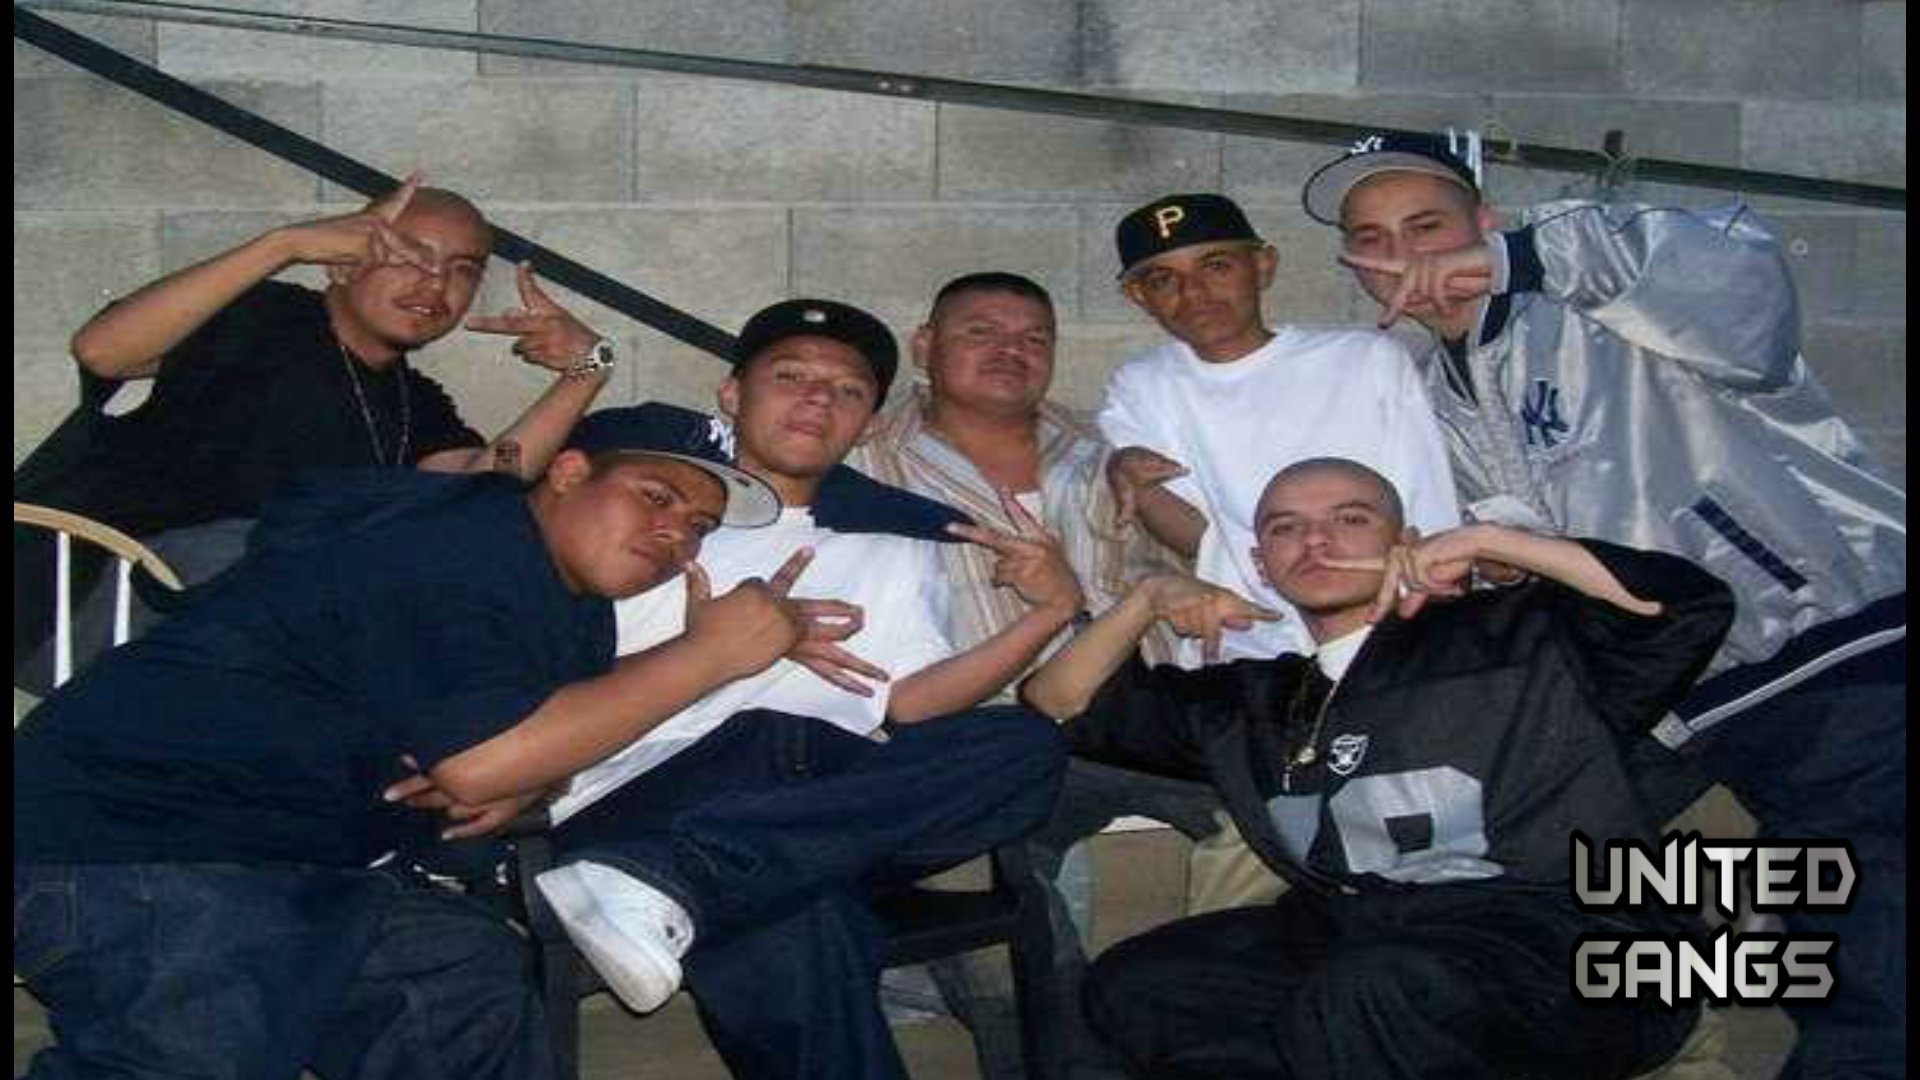 Van nuys asian boyz gang